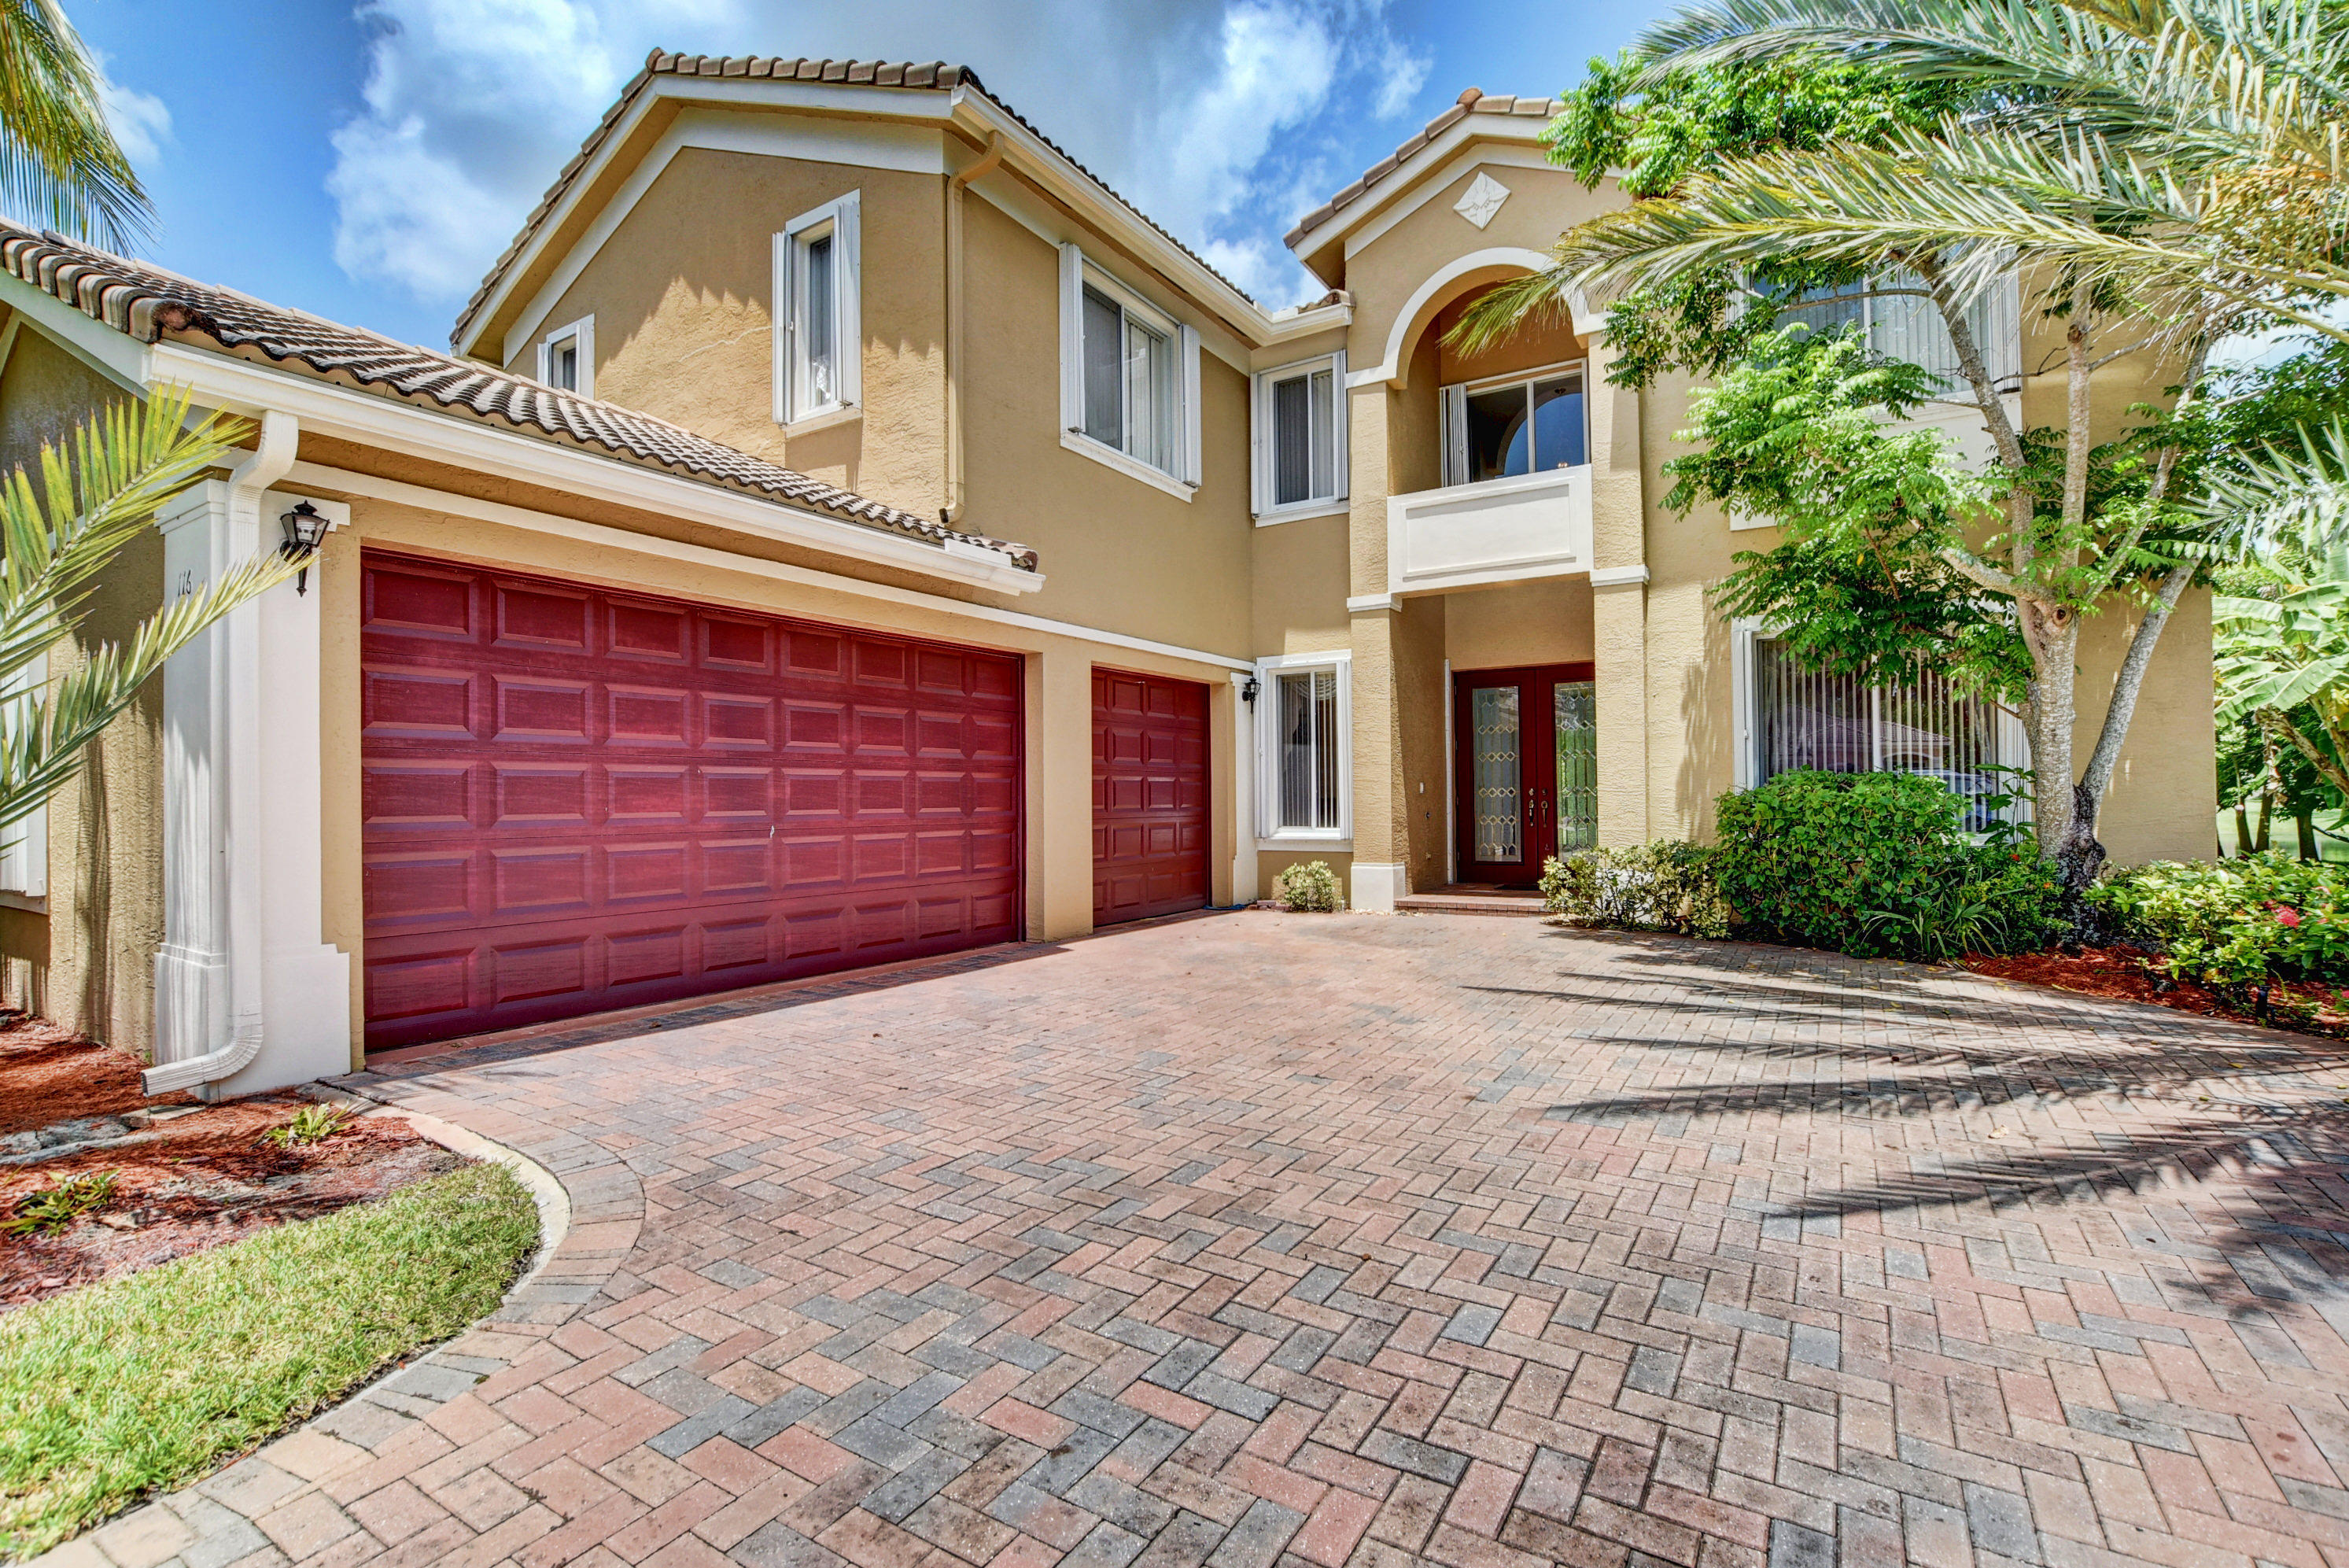 116 Ibisca Terrace, Royal Palm Beach, Florida 33411, 6 Bedrooms Bedrooms, ,4 BathroomsBathrooms,Single Family,For Sale,Bella Terra,Ibisca,RX-10552582